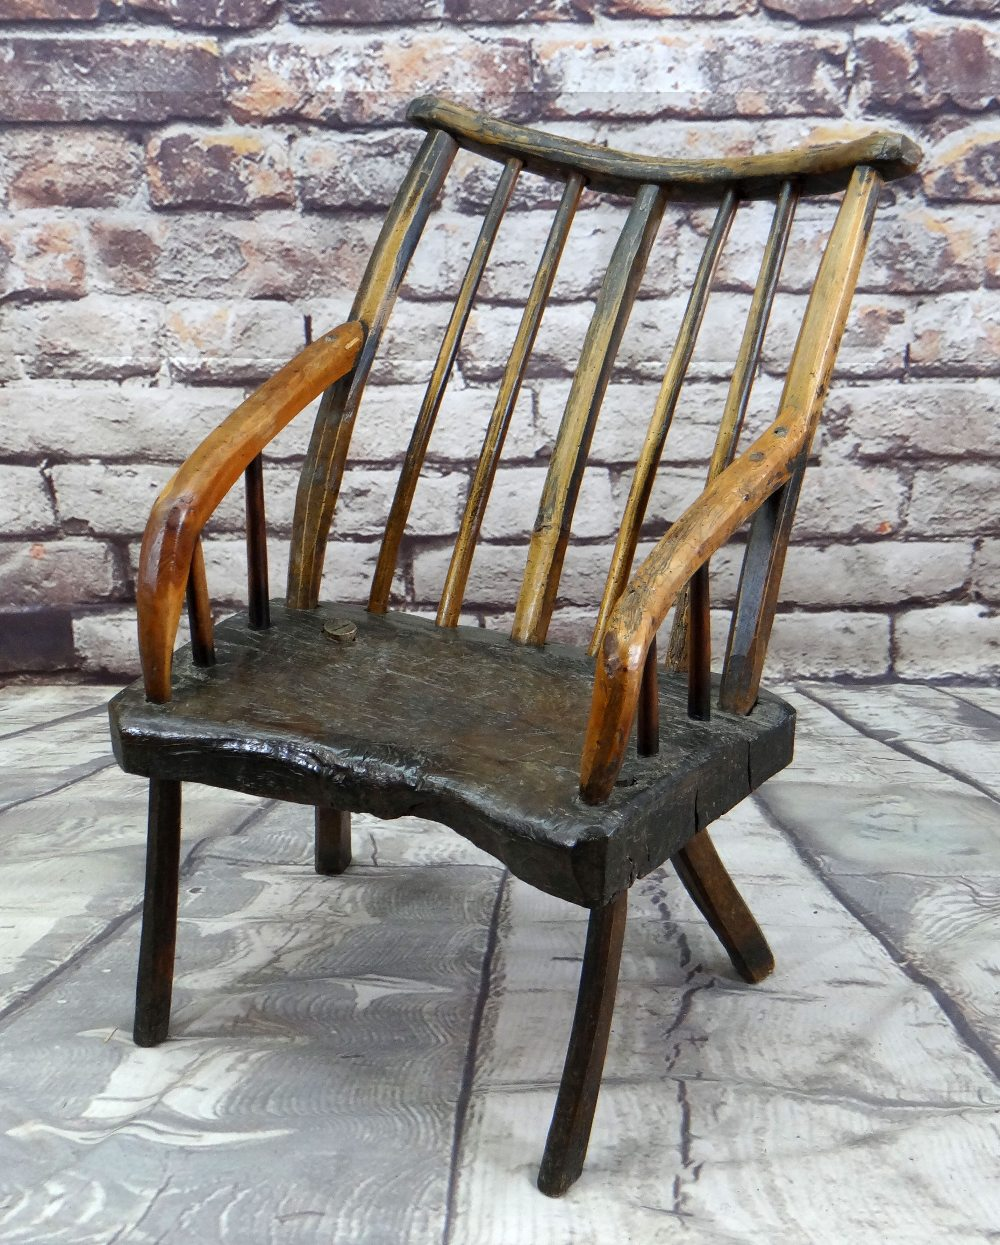 PRIMITIVE OAK & ASH ARMCHAIR, raked comb back with spindles and down-turned arms, thick